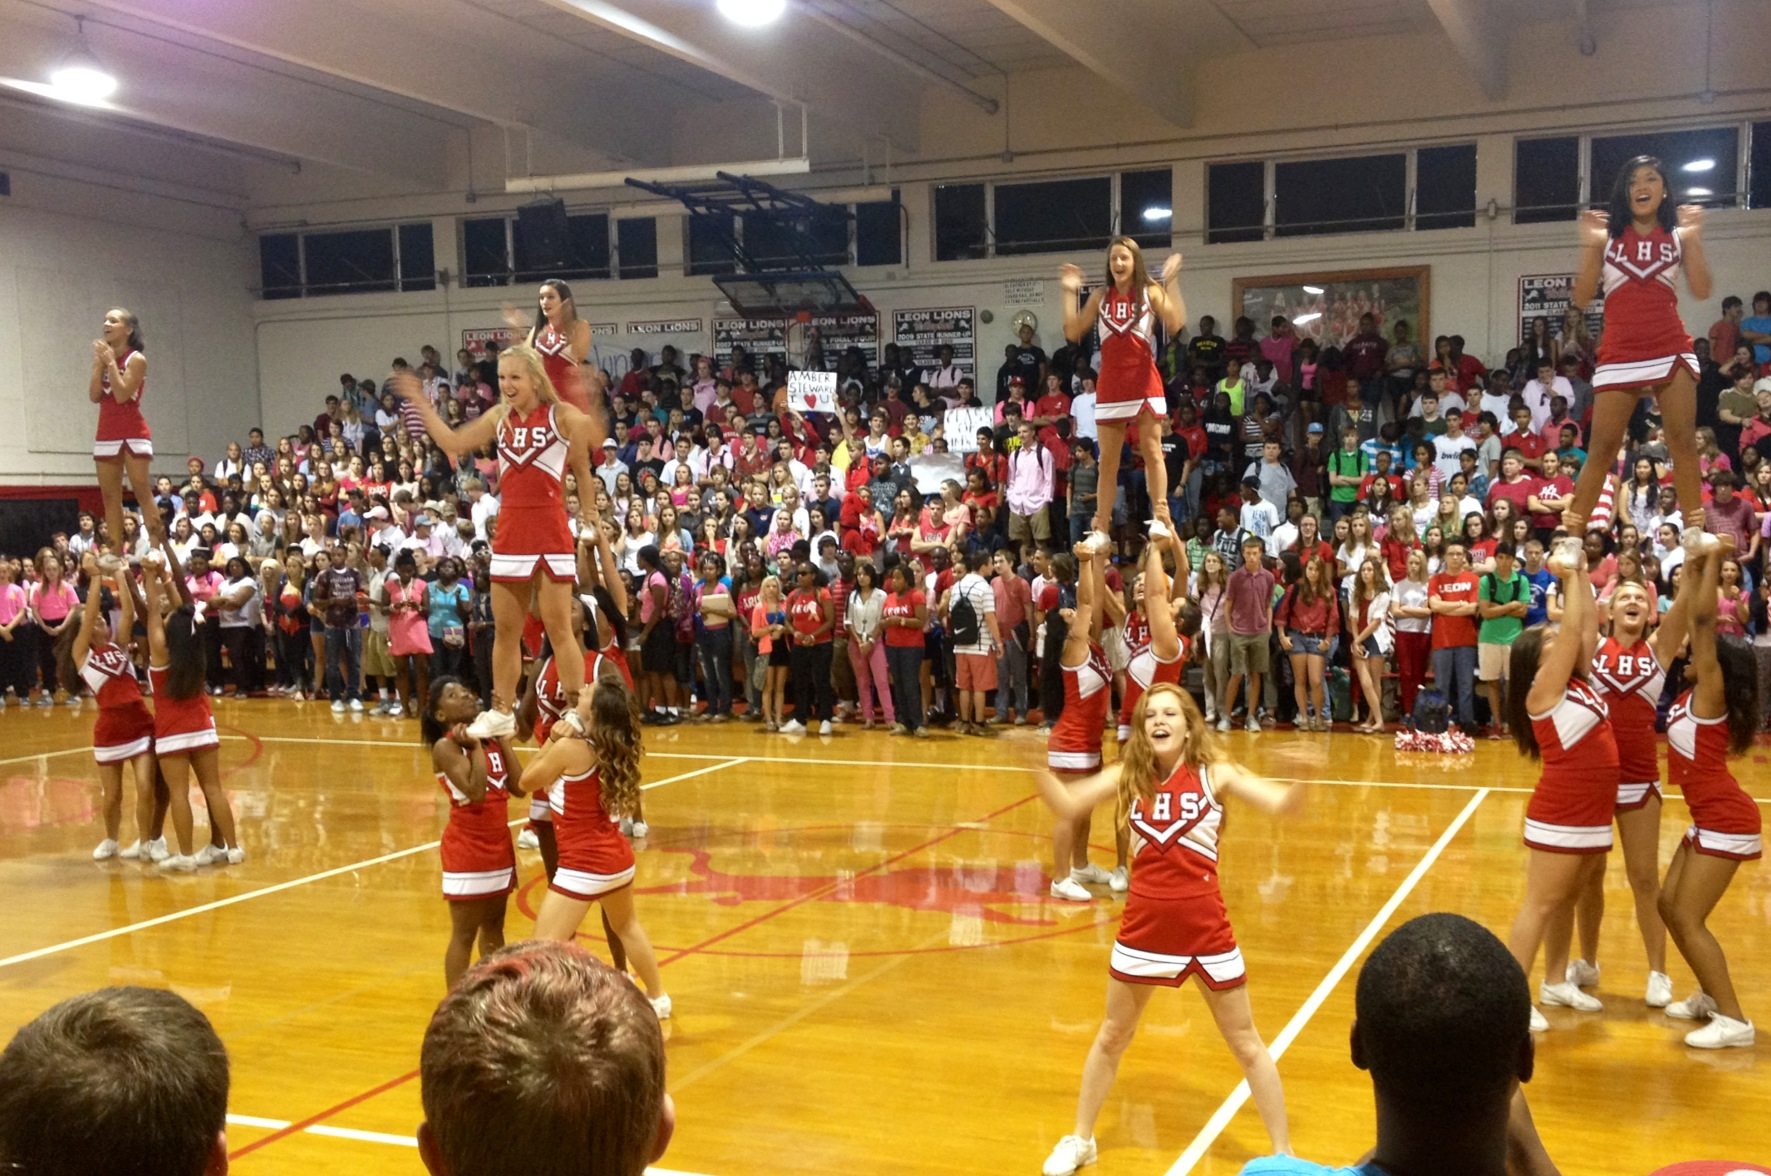 Pep rally click for details pep rally games youtube click for details